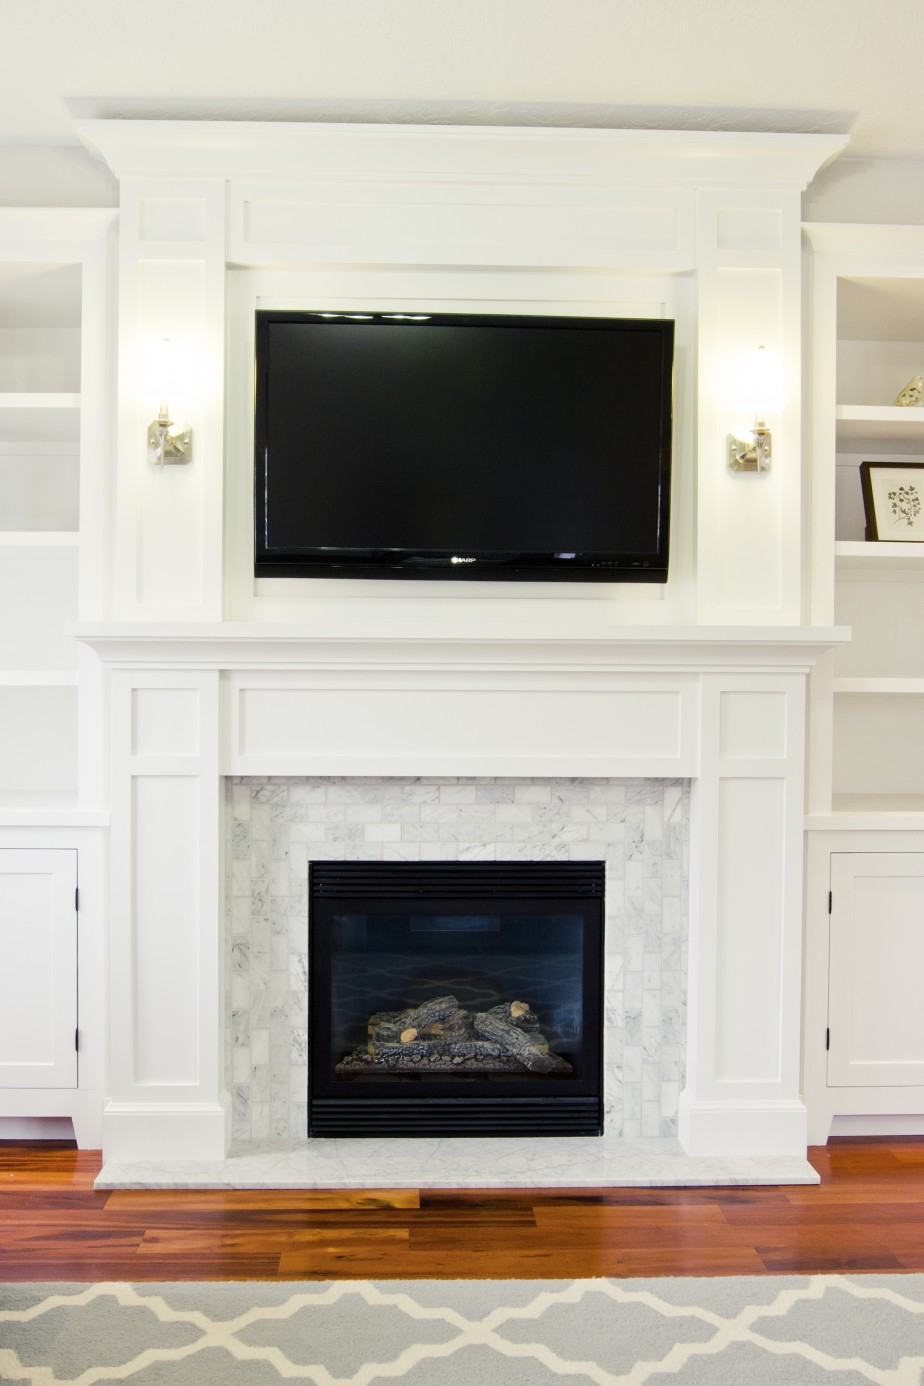 White tile fireplace surround fireplace design ideas Fireplace design ideas